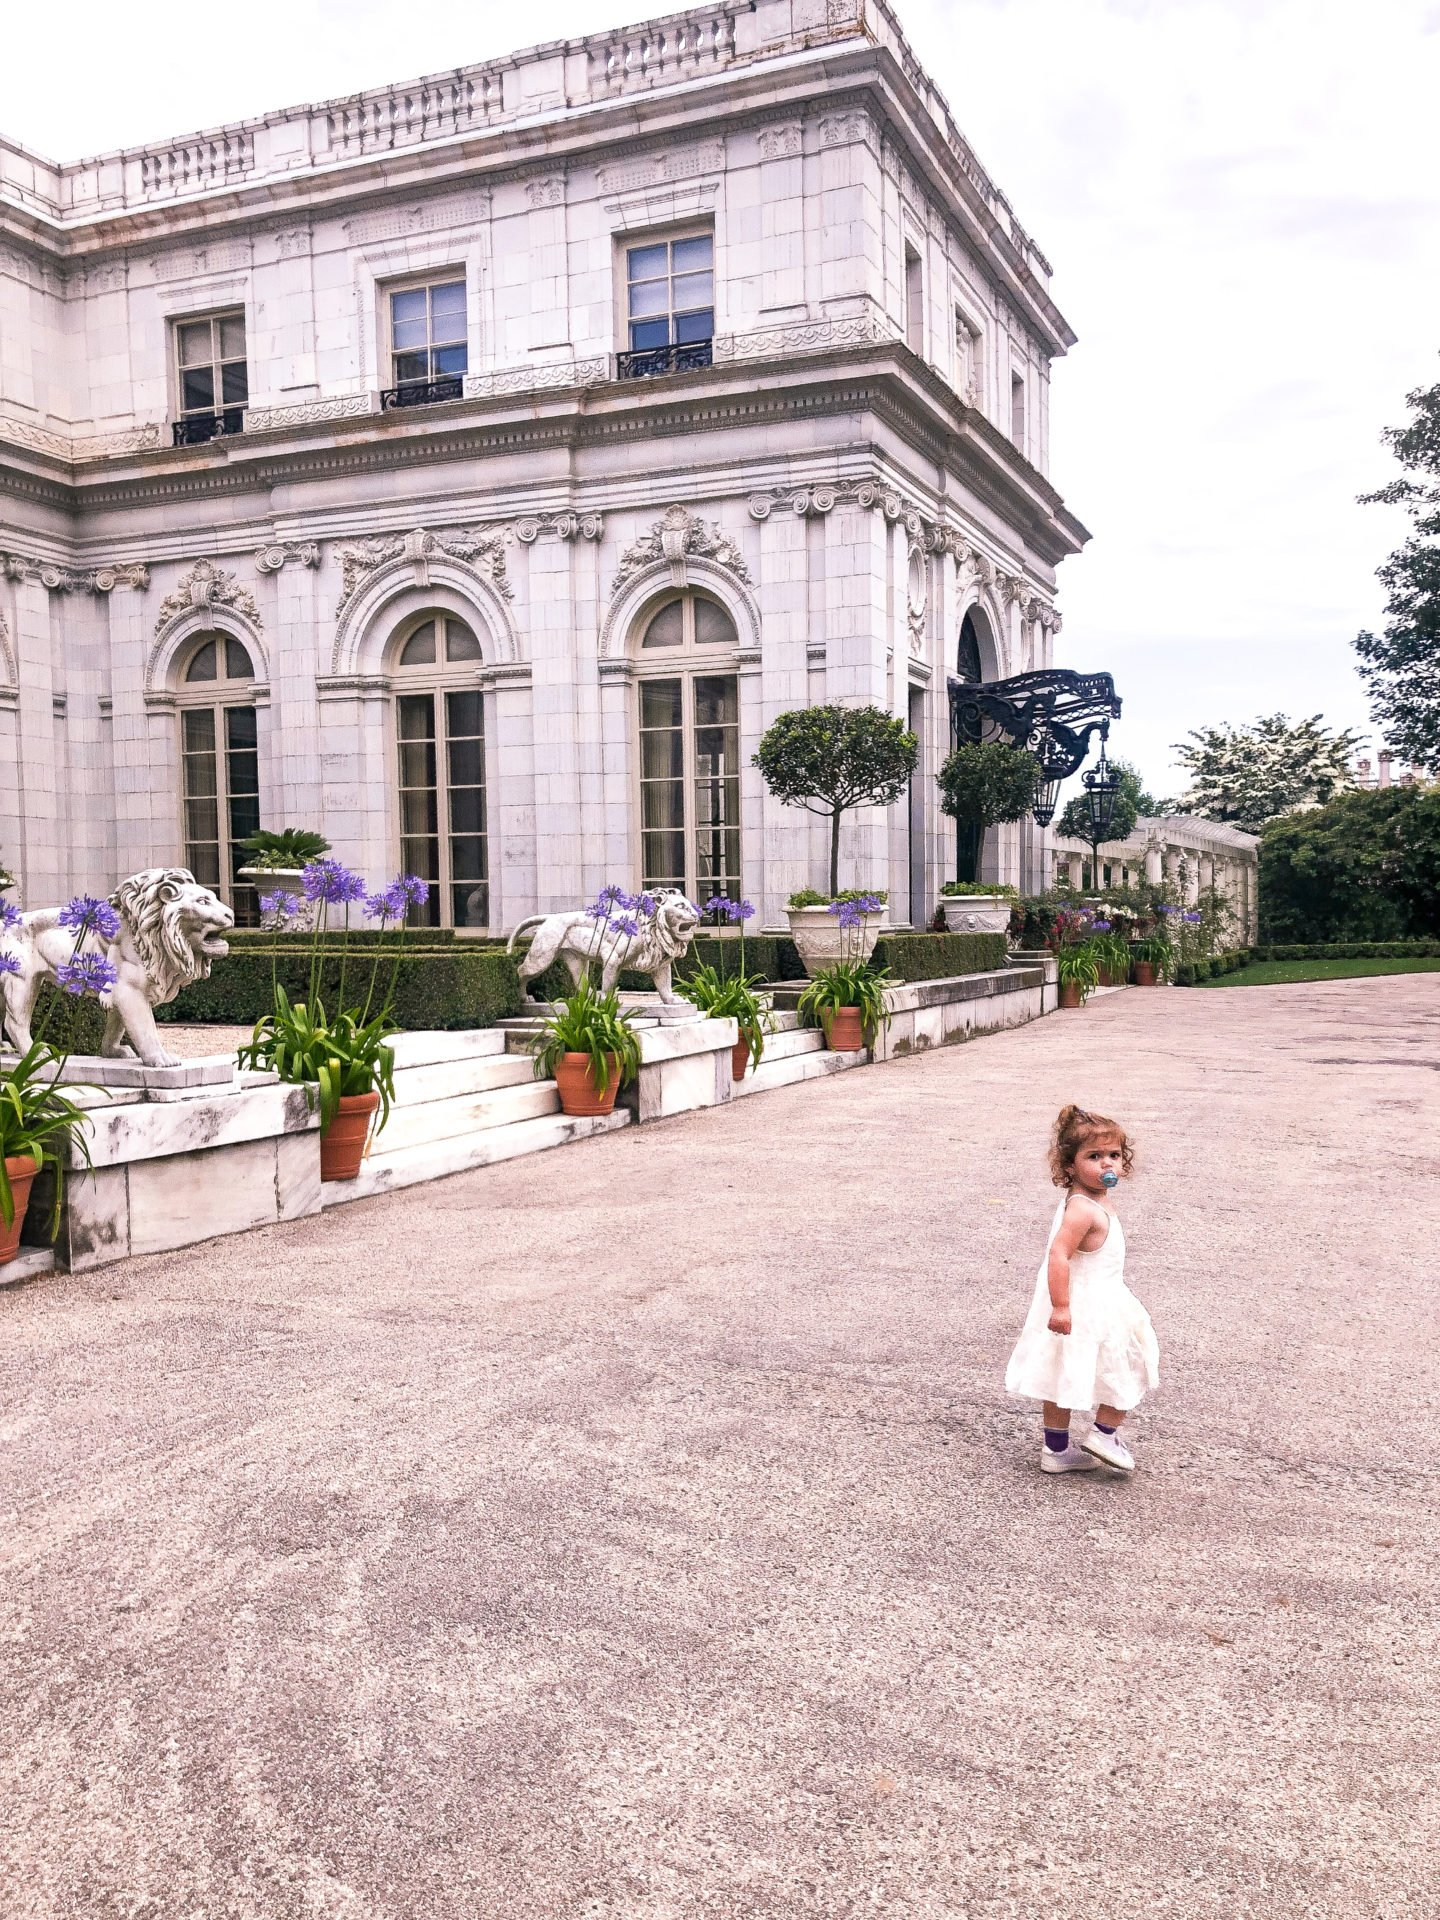 Lifestyle Blogger Chocolate & Lace shares her trip to Rose Cliff Mansion in Newport, Rhode Island.